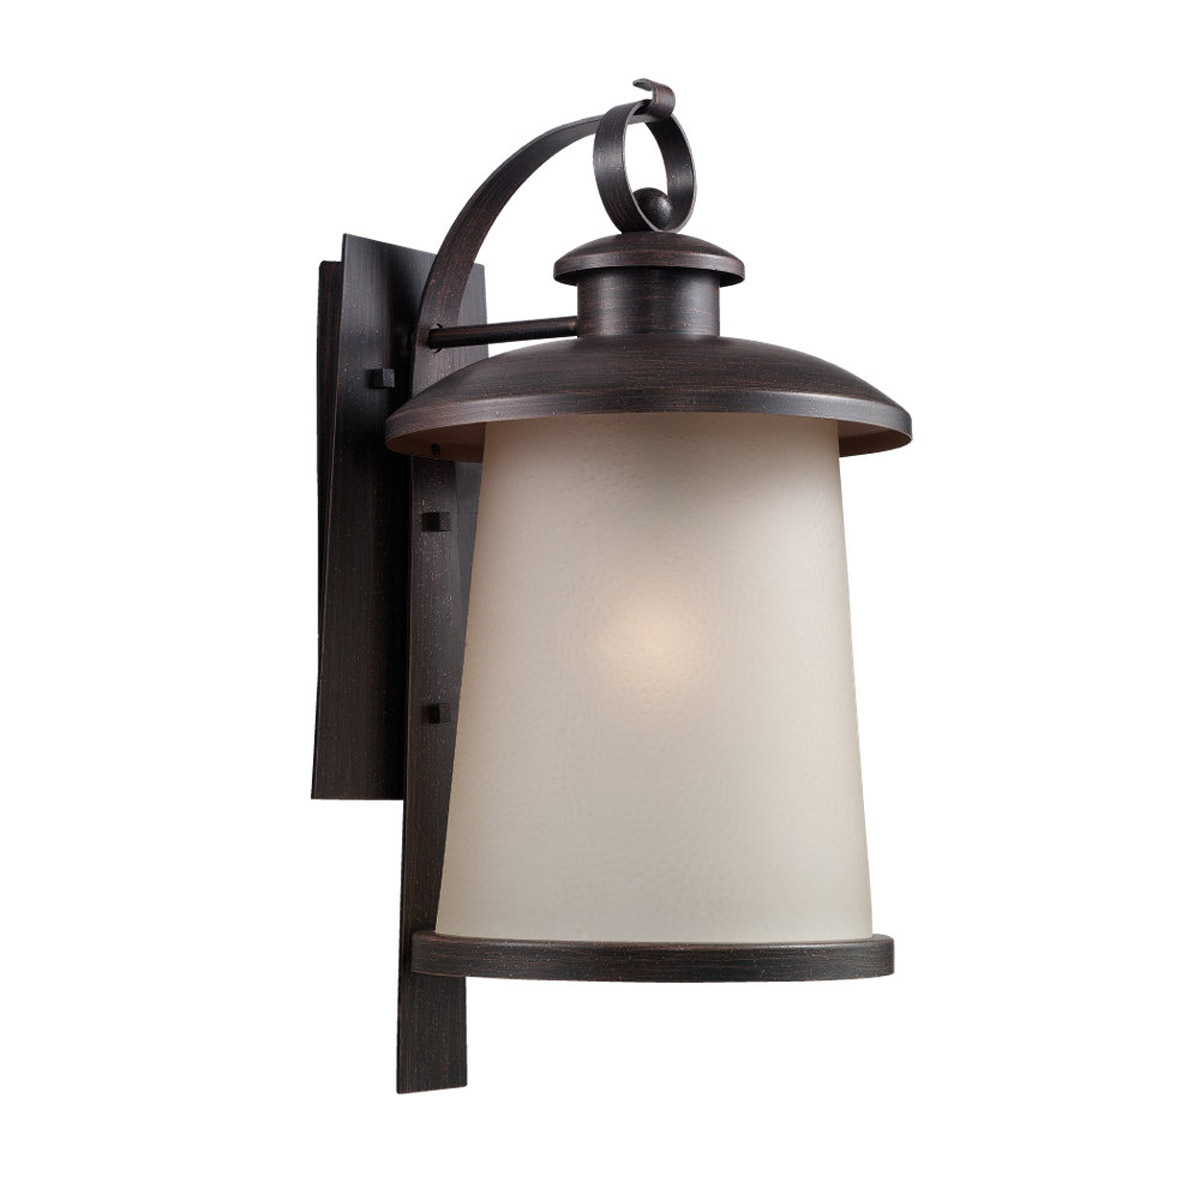 Sea Gull Lighting 59th Street 1 Light Outdoor Wall Lantern in Textured Rust Patina 88332-08 photo